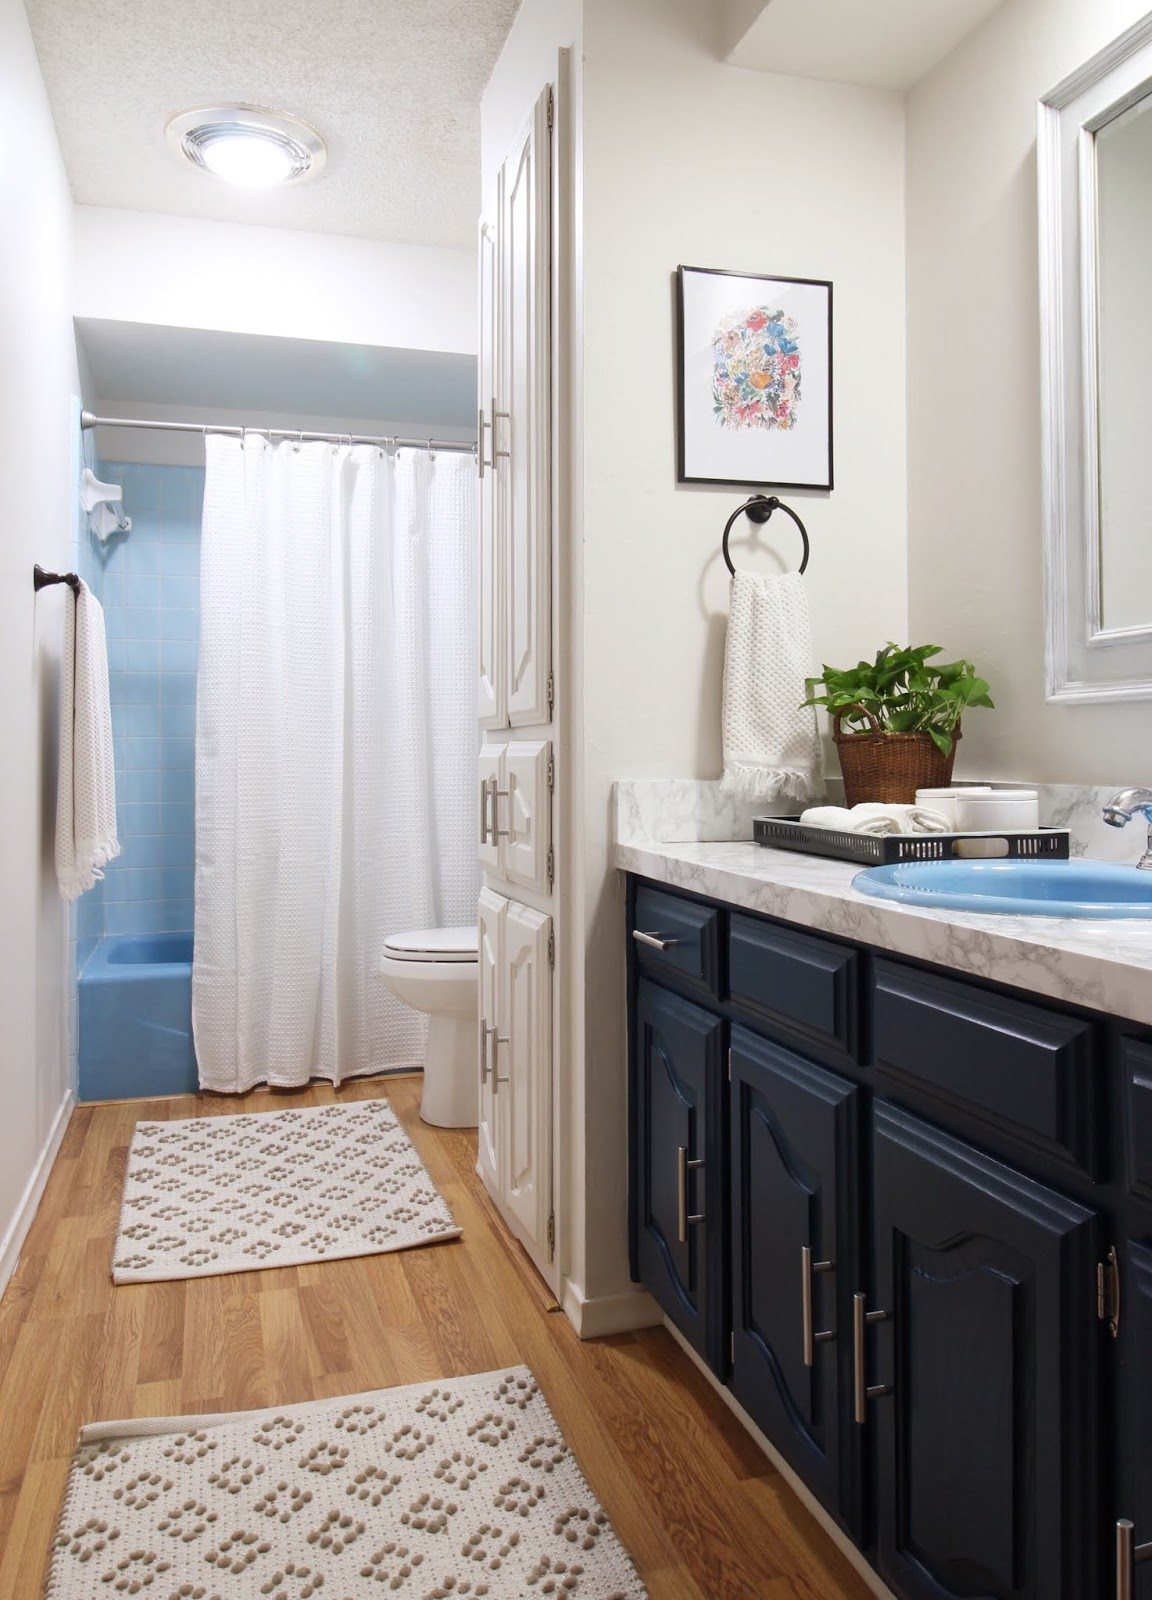 Come see what we did to make this outdated blue tiled bathroom charming and more modern! | House Homemade